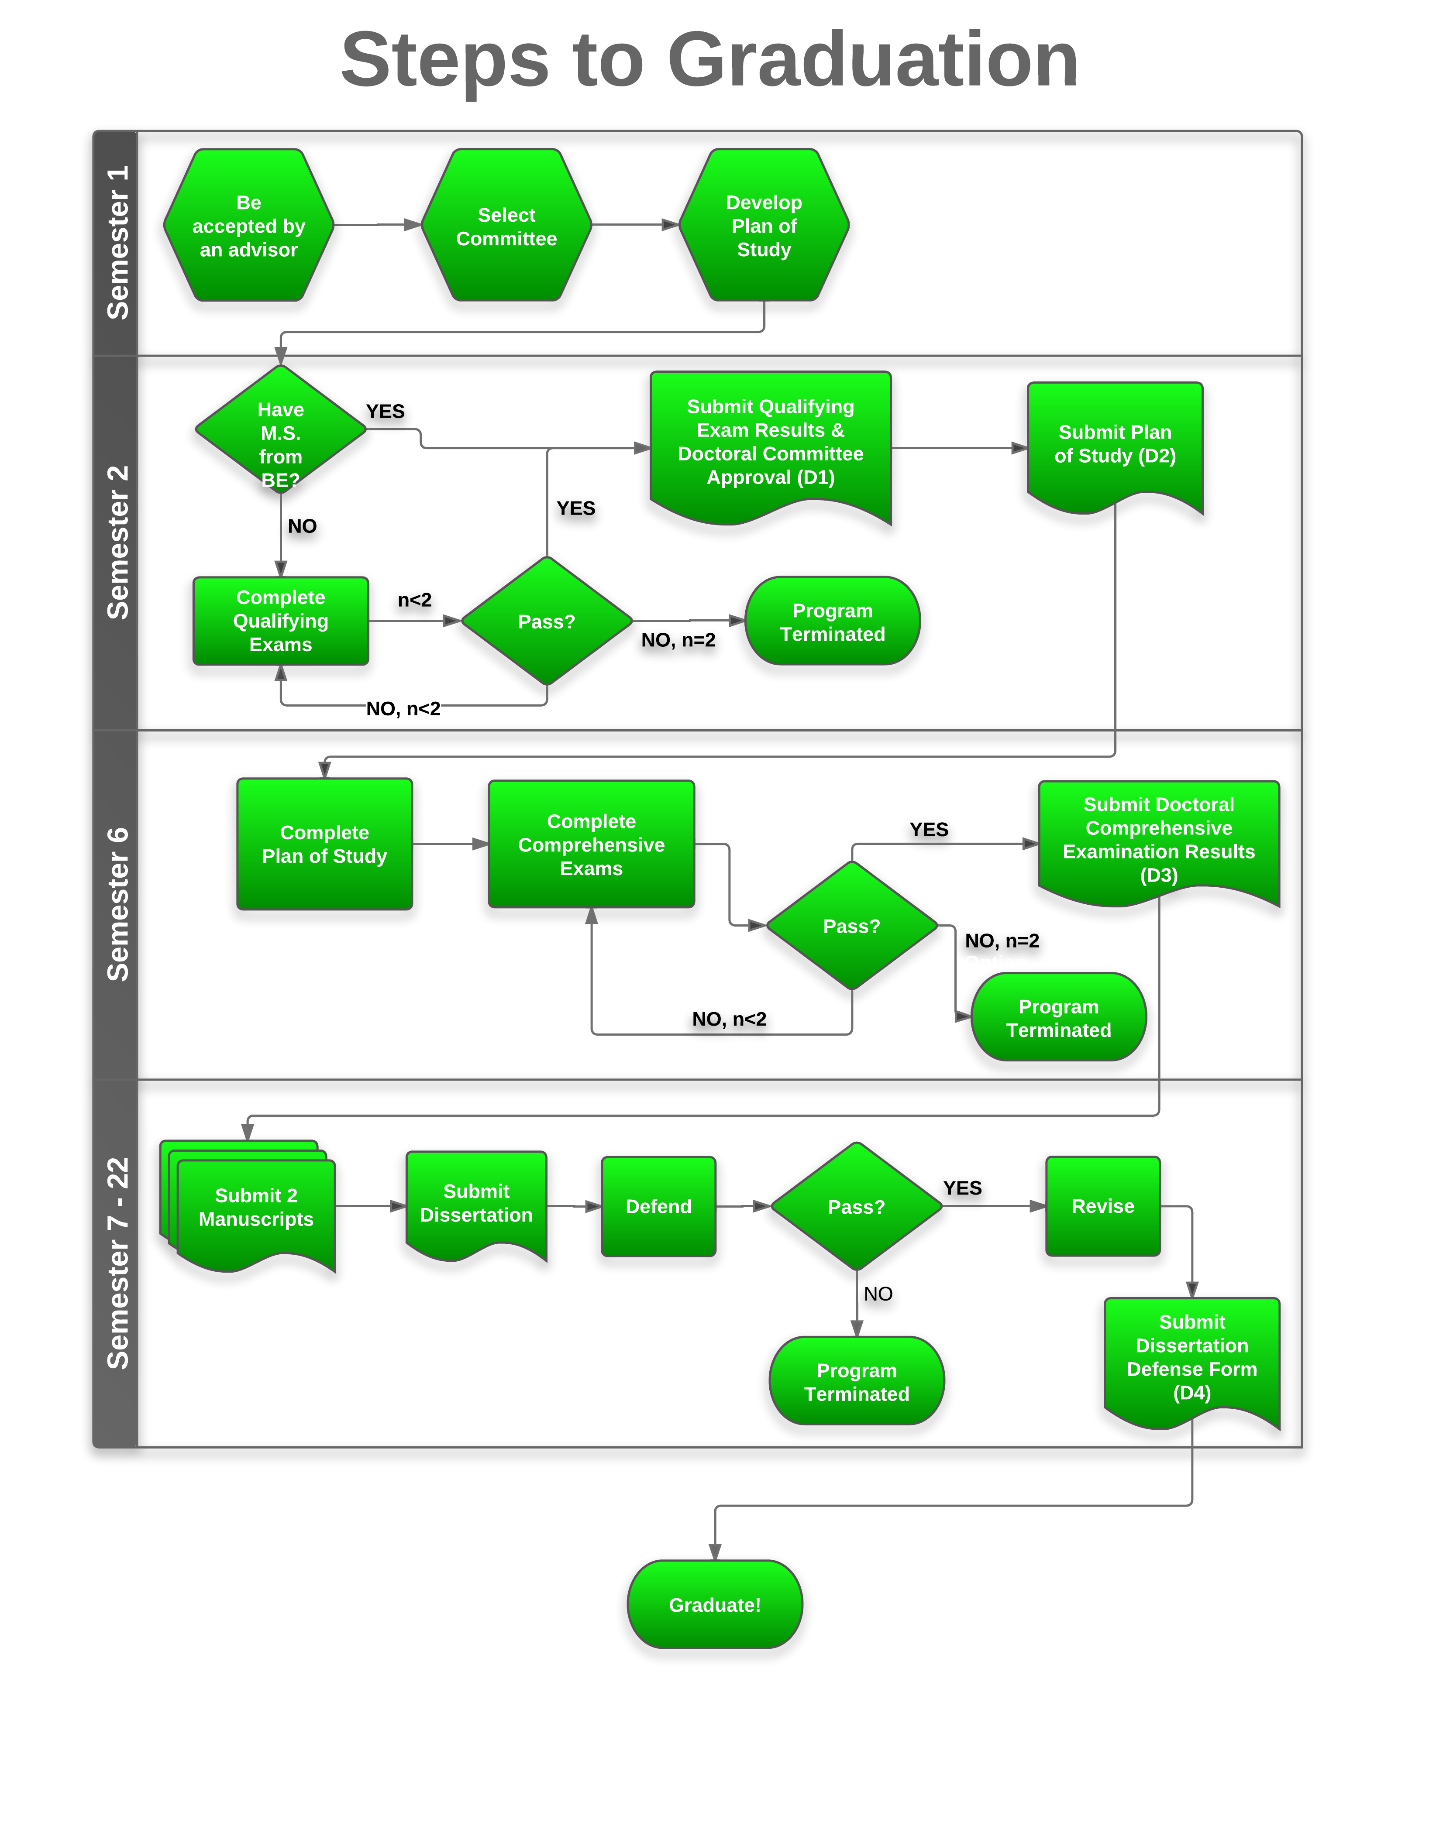 Figure 1: Flowchart for